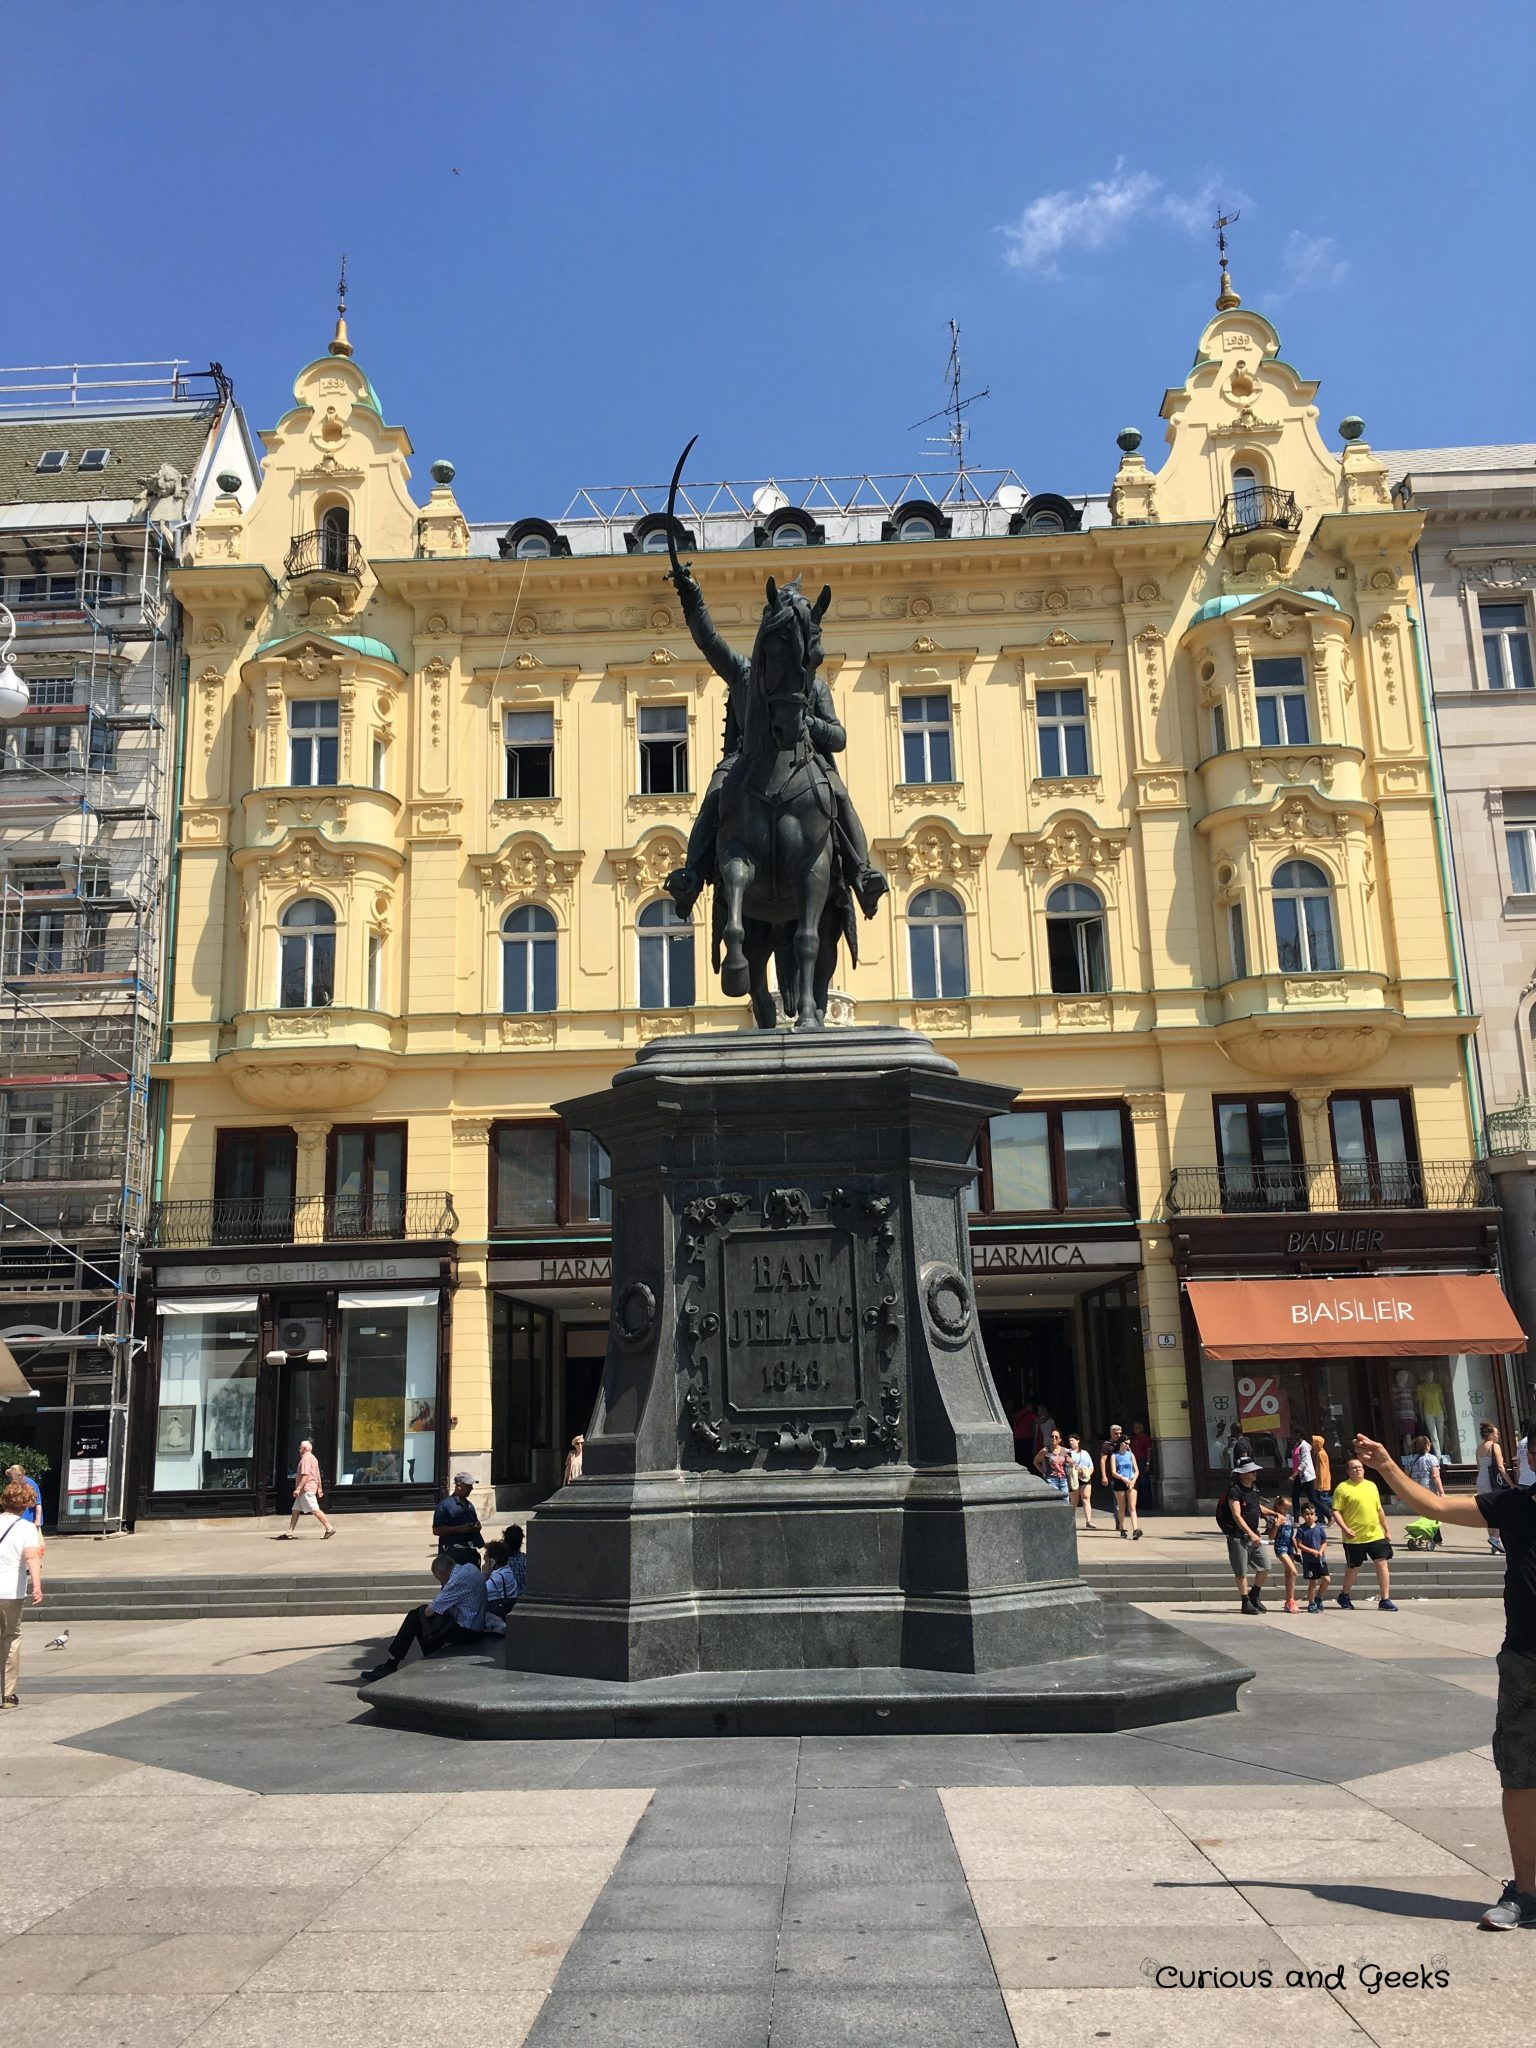 ban josip jelacic - Things to do in Zagreb: A list of 14 places you should stop by